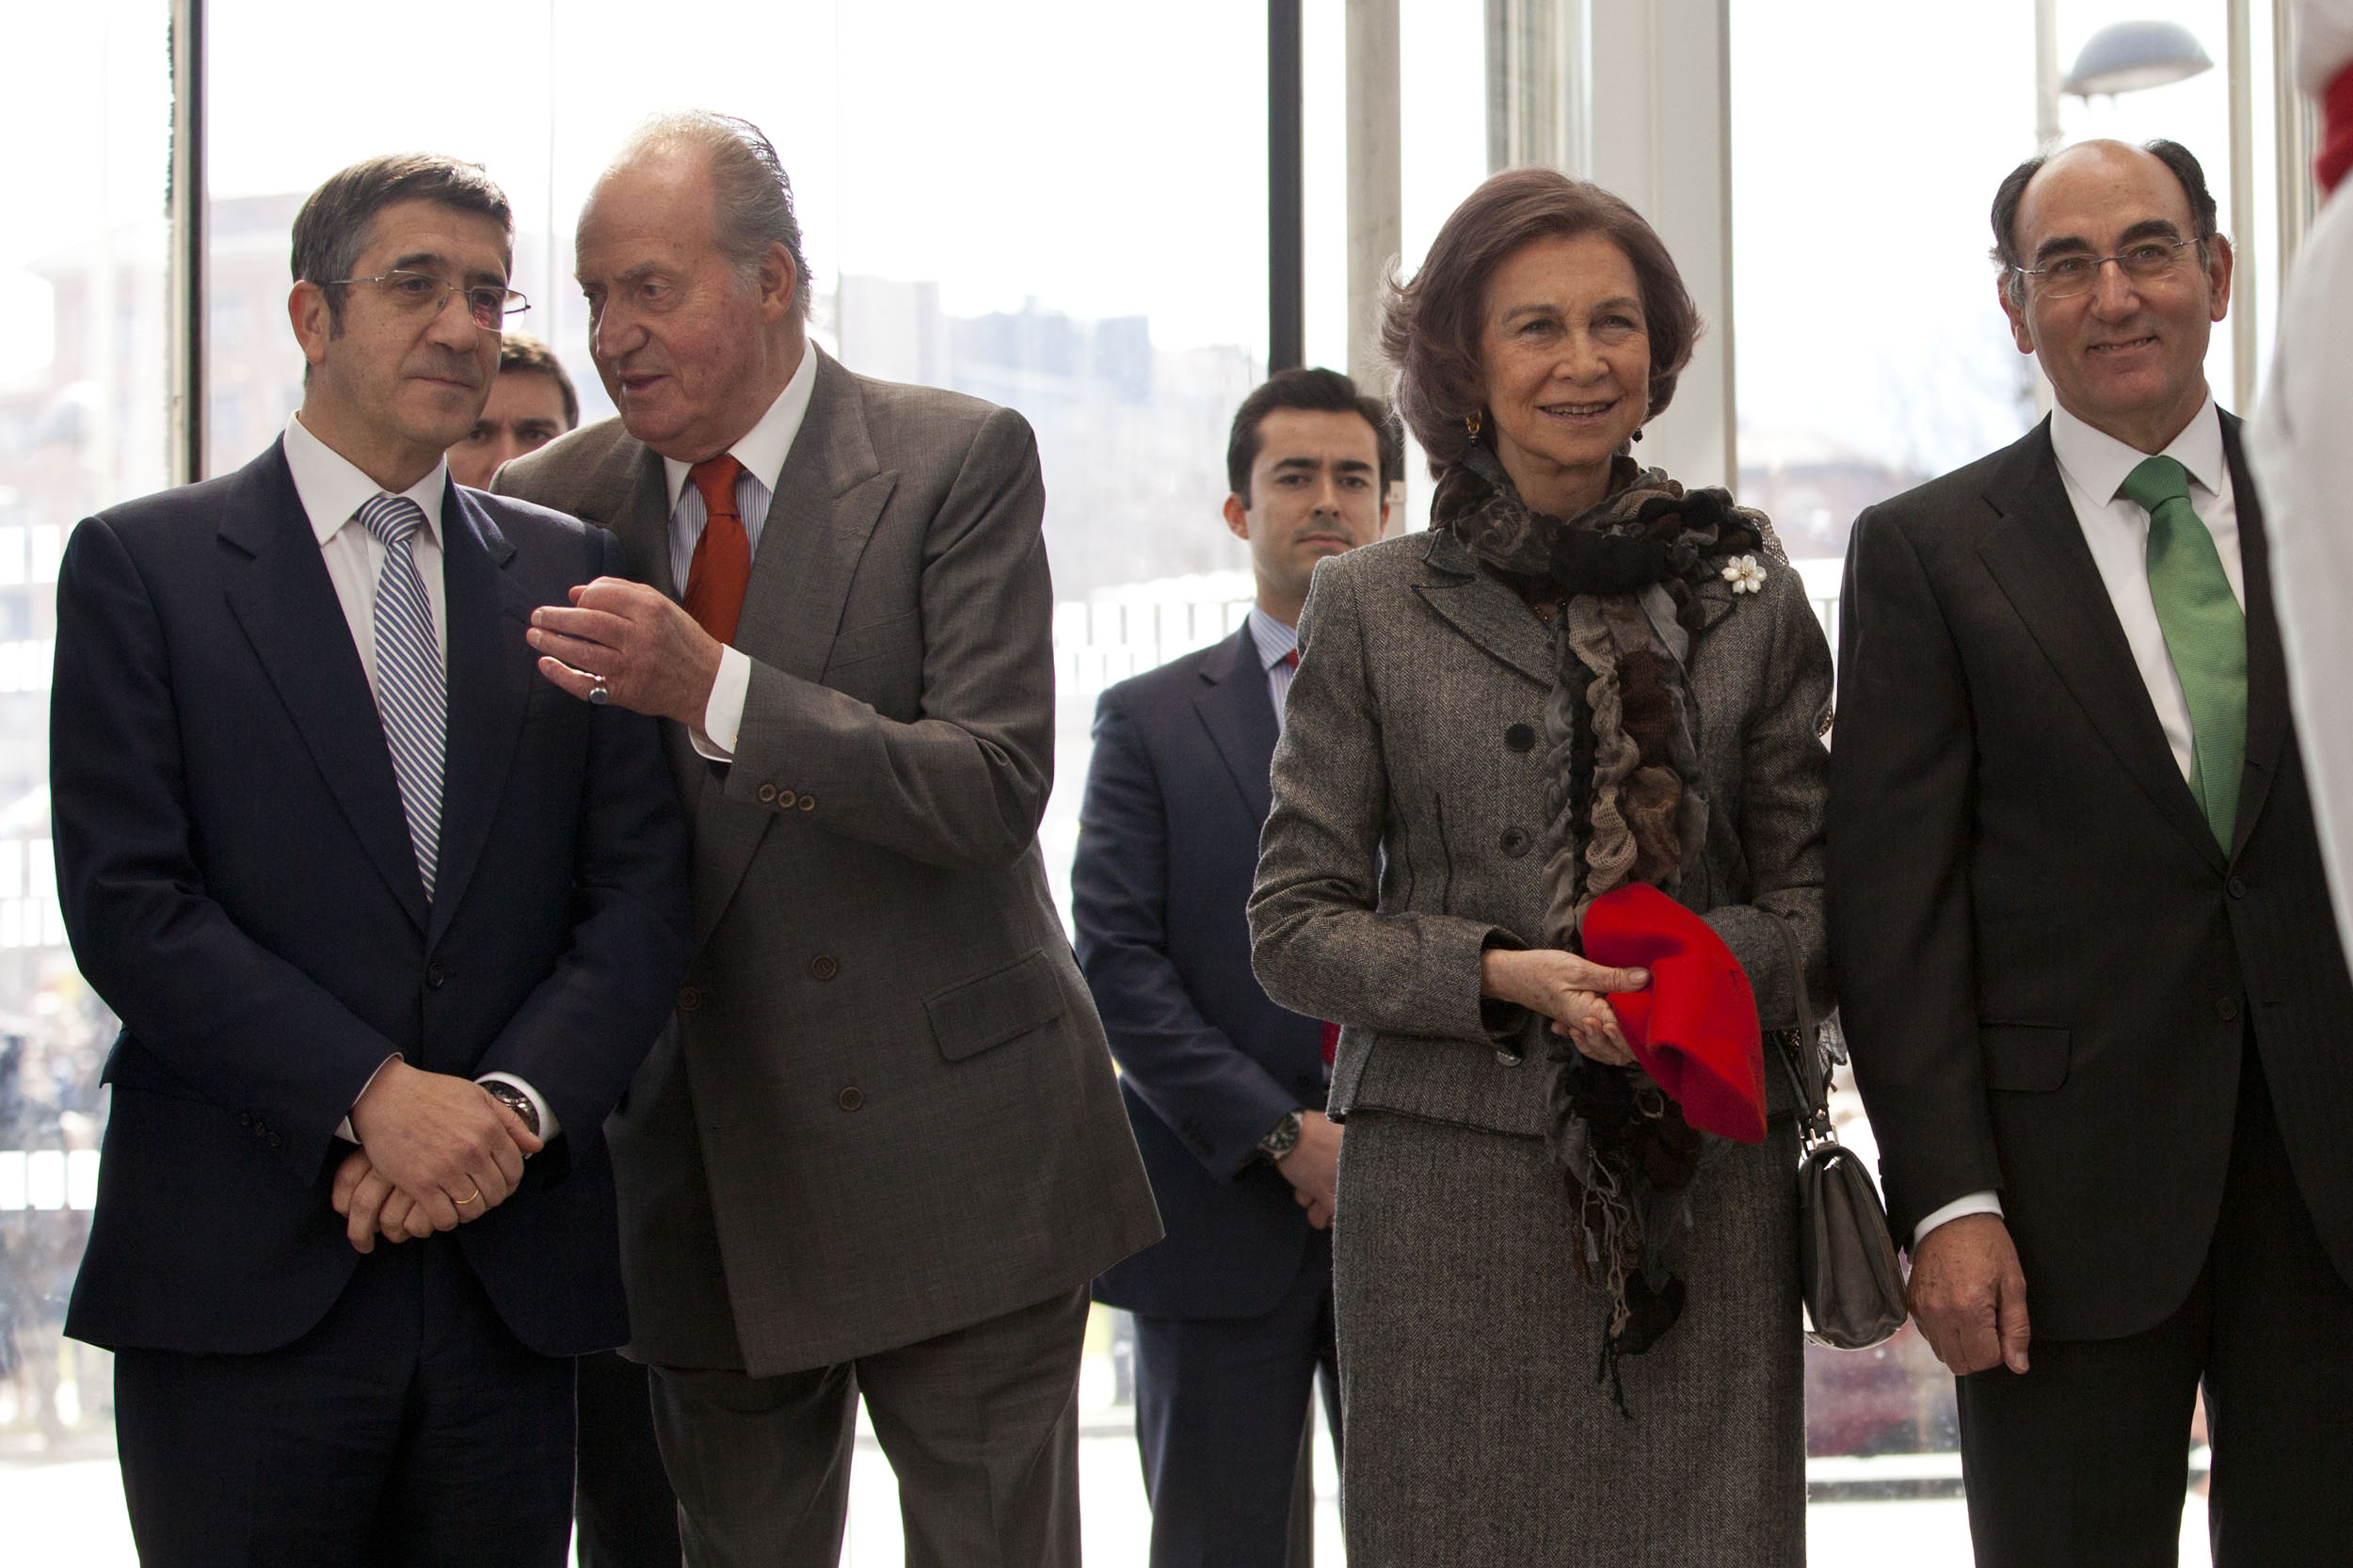 Iberdrola Tower opened